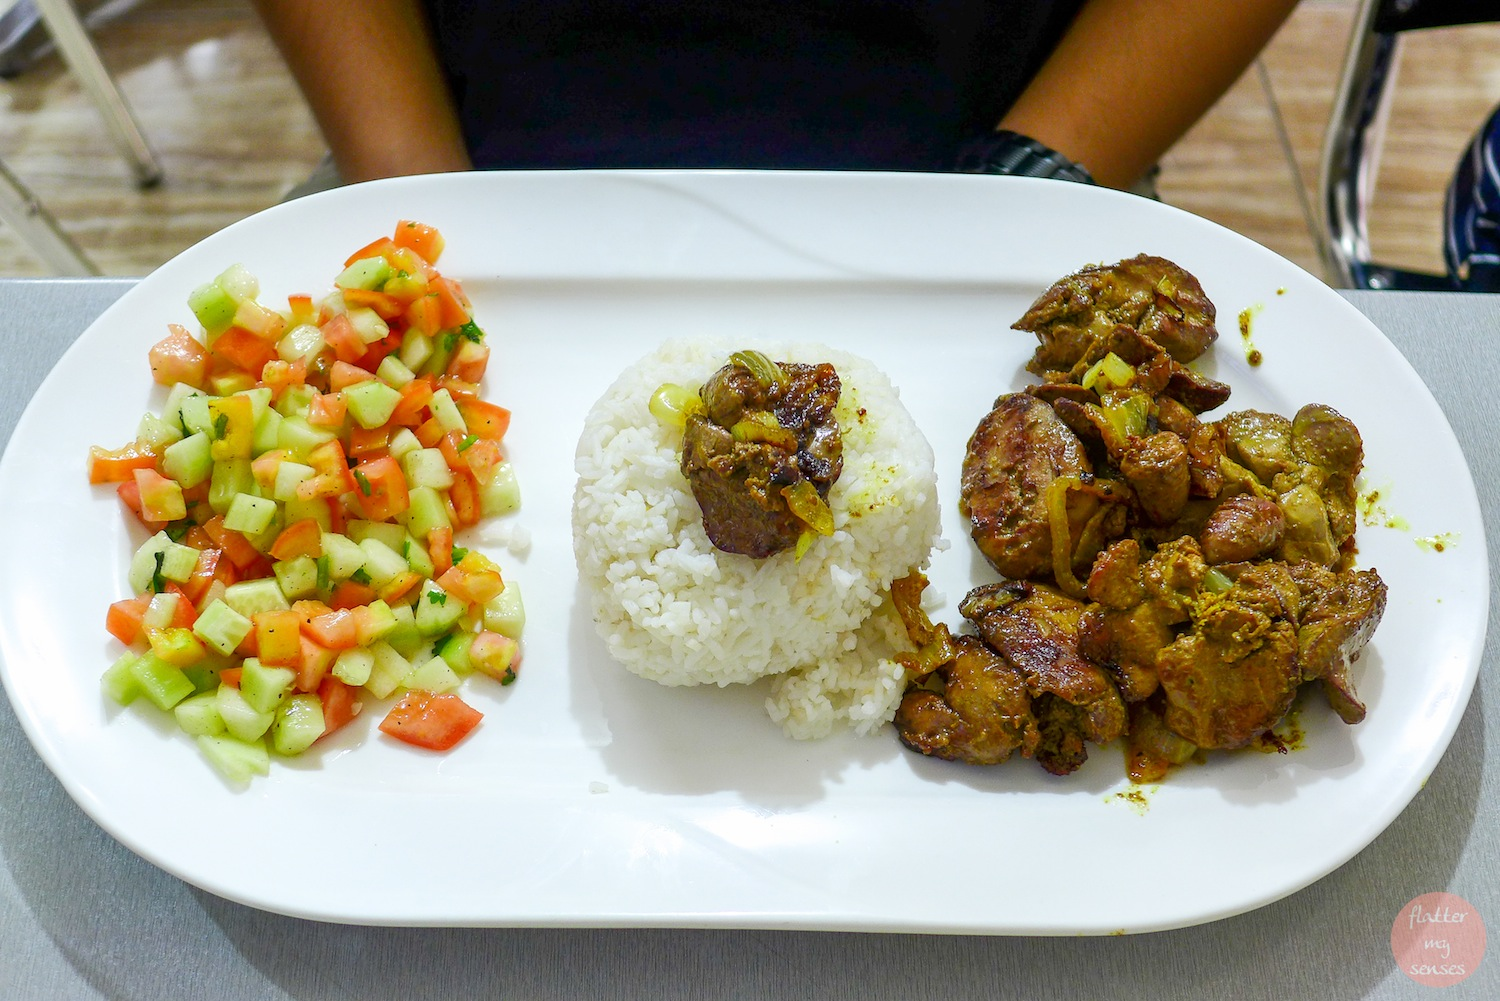 Chicken Liver with Onion (Php 280). You can also get this with mashed potato,french fries or inside a pita.